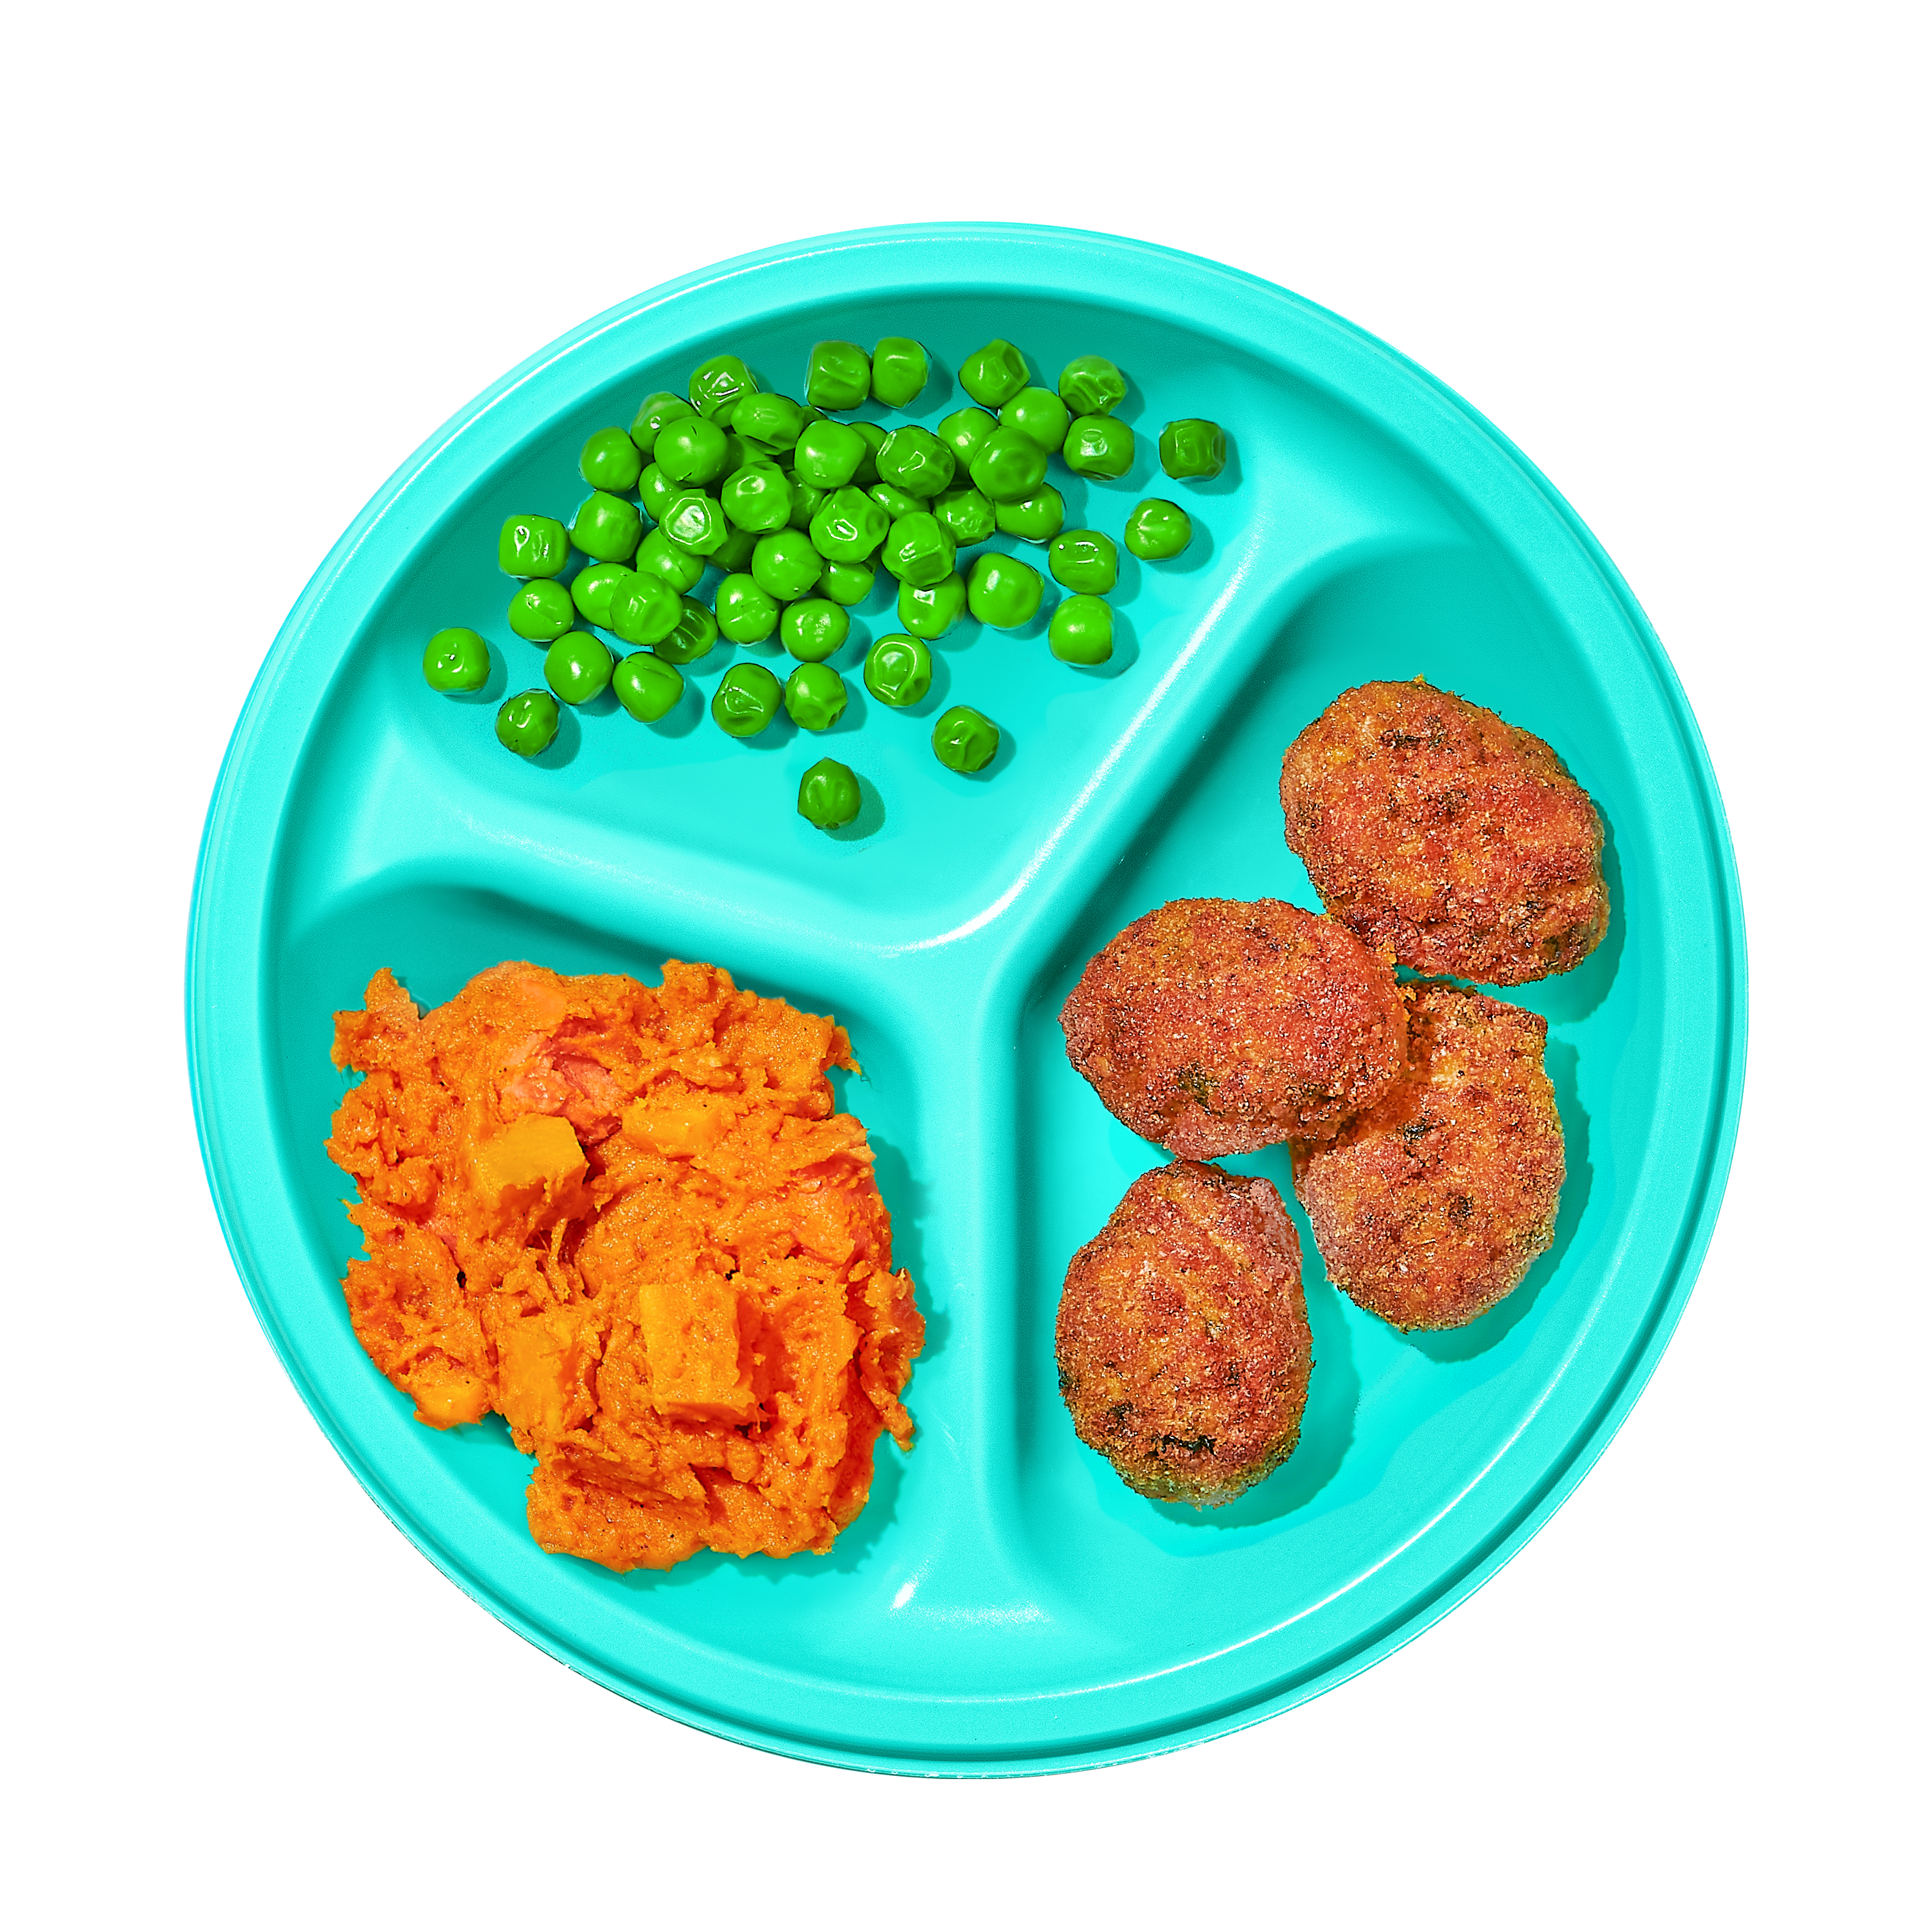 Plate of Chicken Super Nuggets